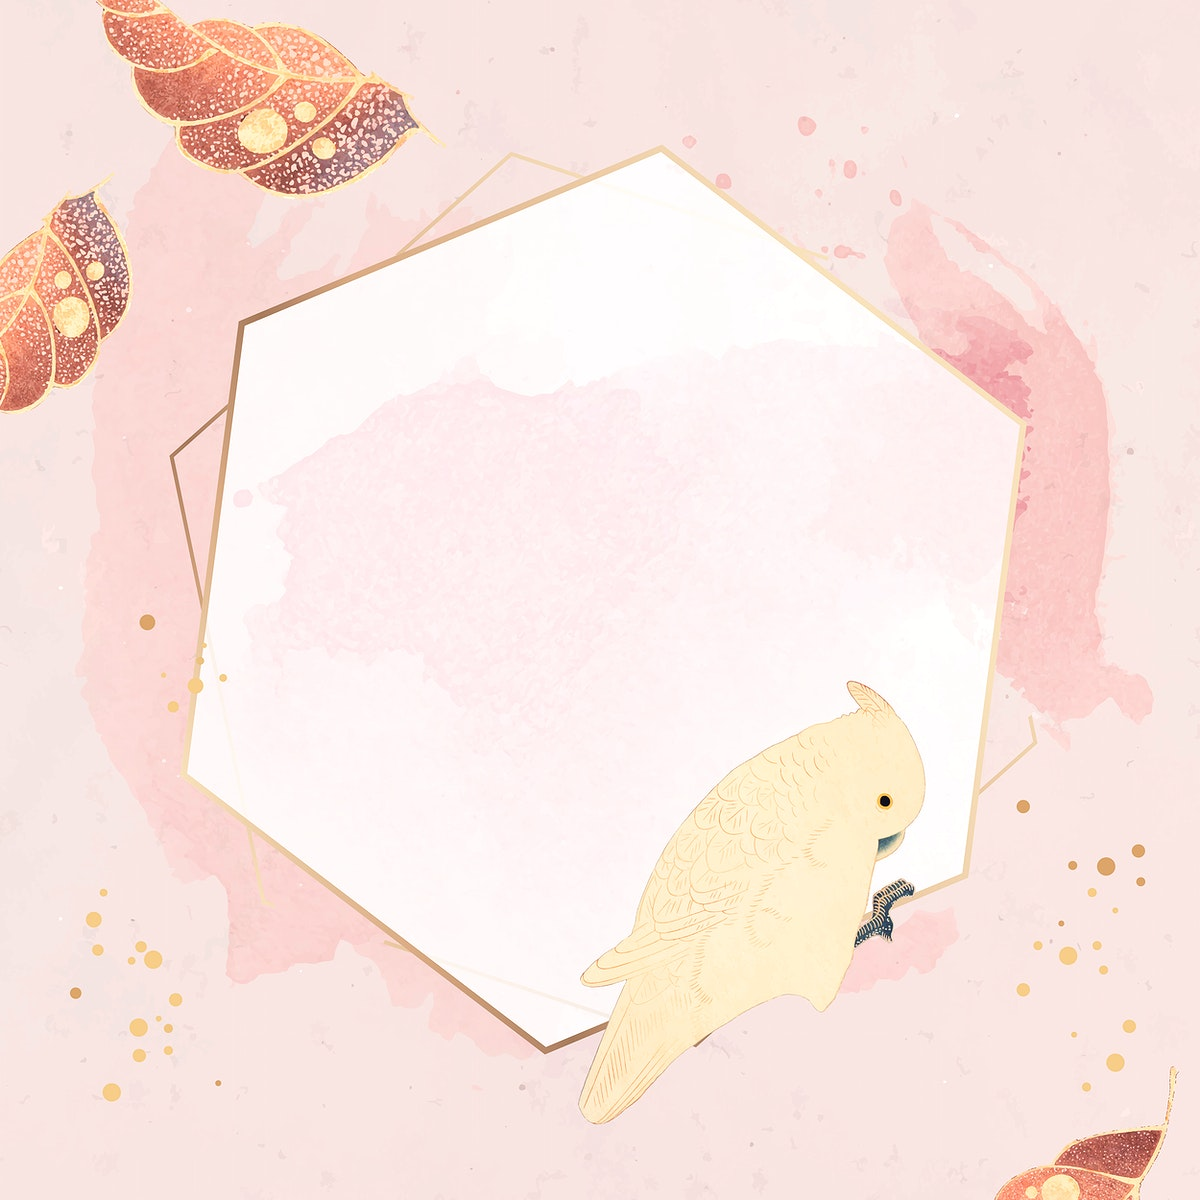 Hexagonal gold frame with a macaw and leaf motifs on a pastel pink background vector